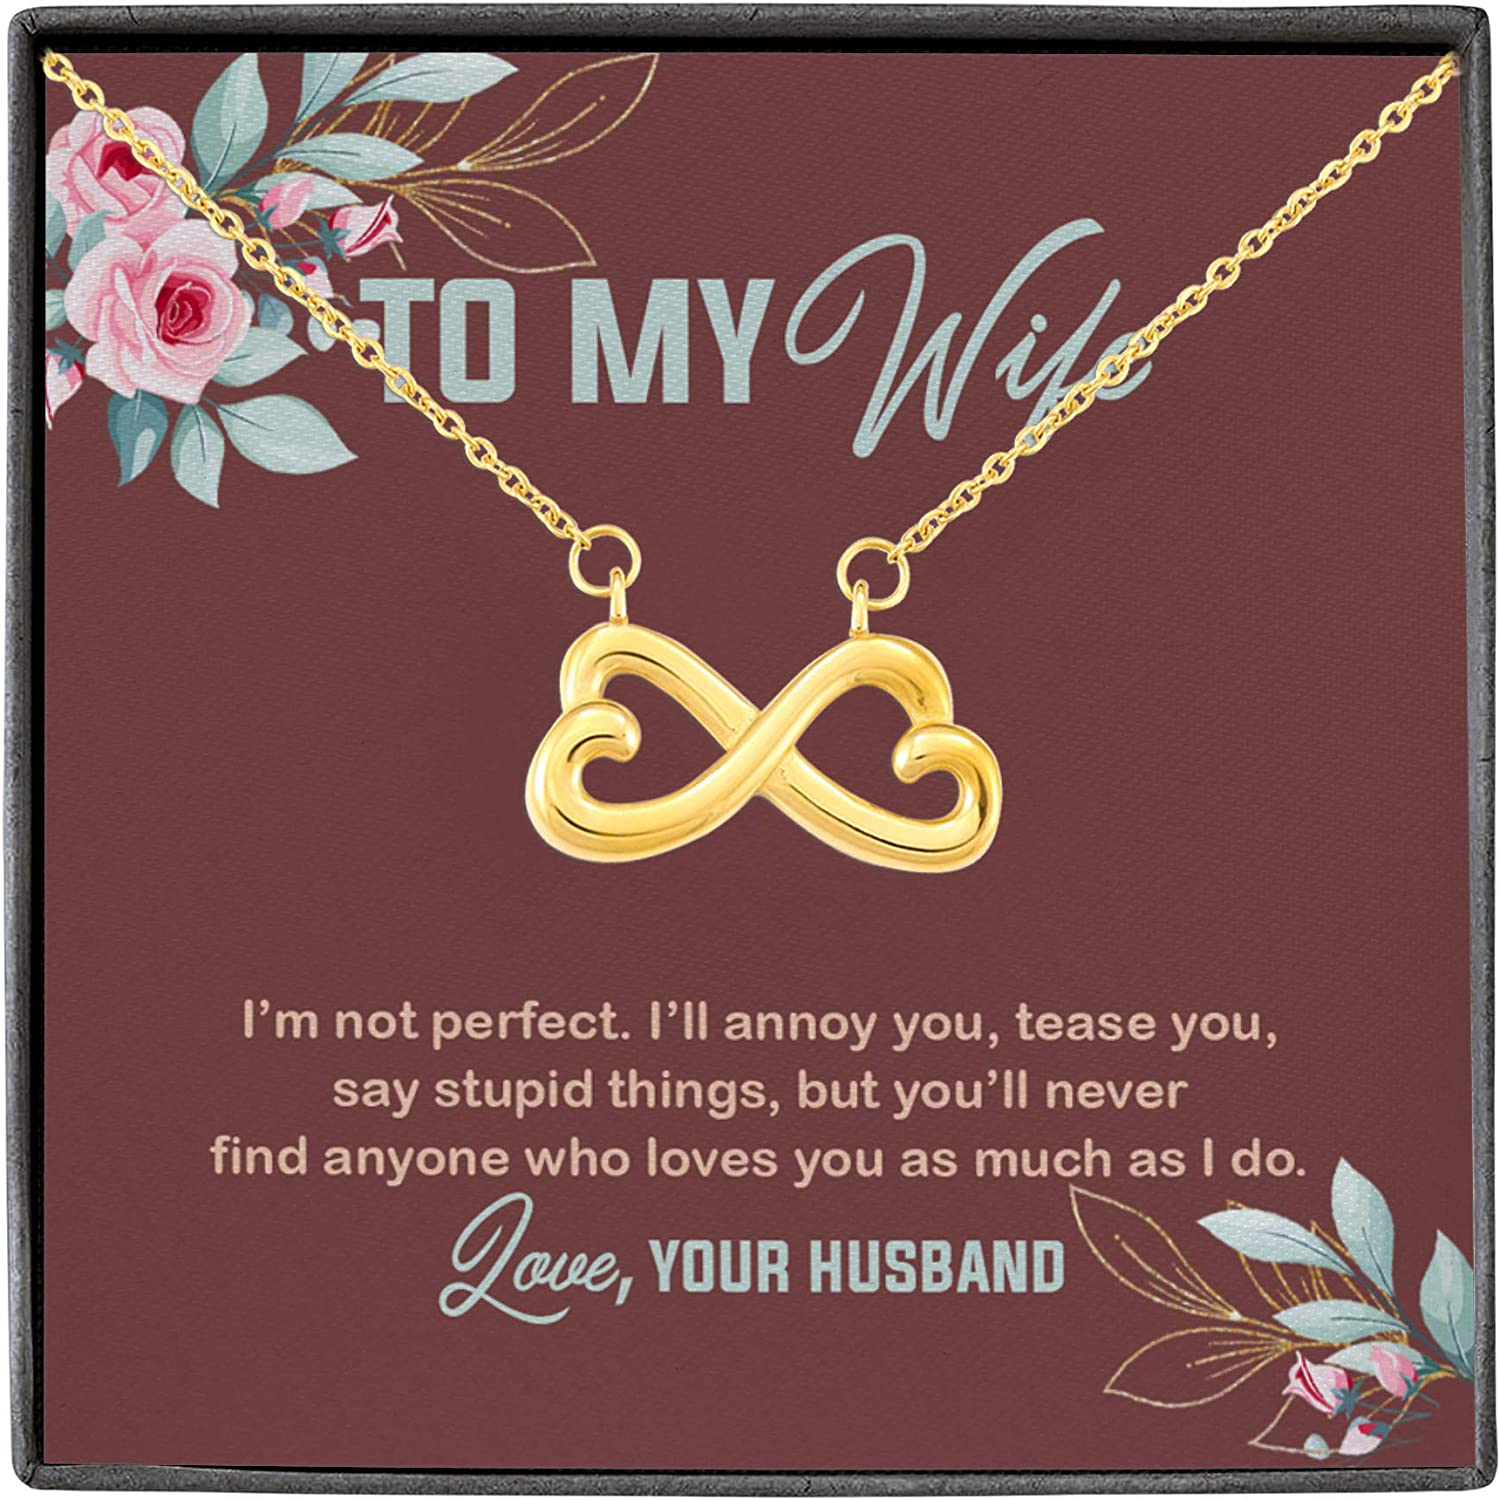 Austin Mall Necklace To Beauty products My Wife I'm Not Say I'll Tease Annoy Perfect You